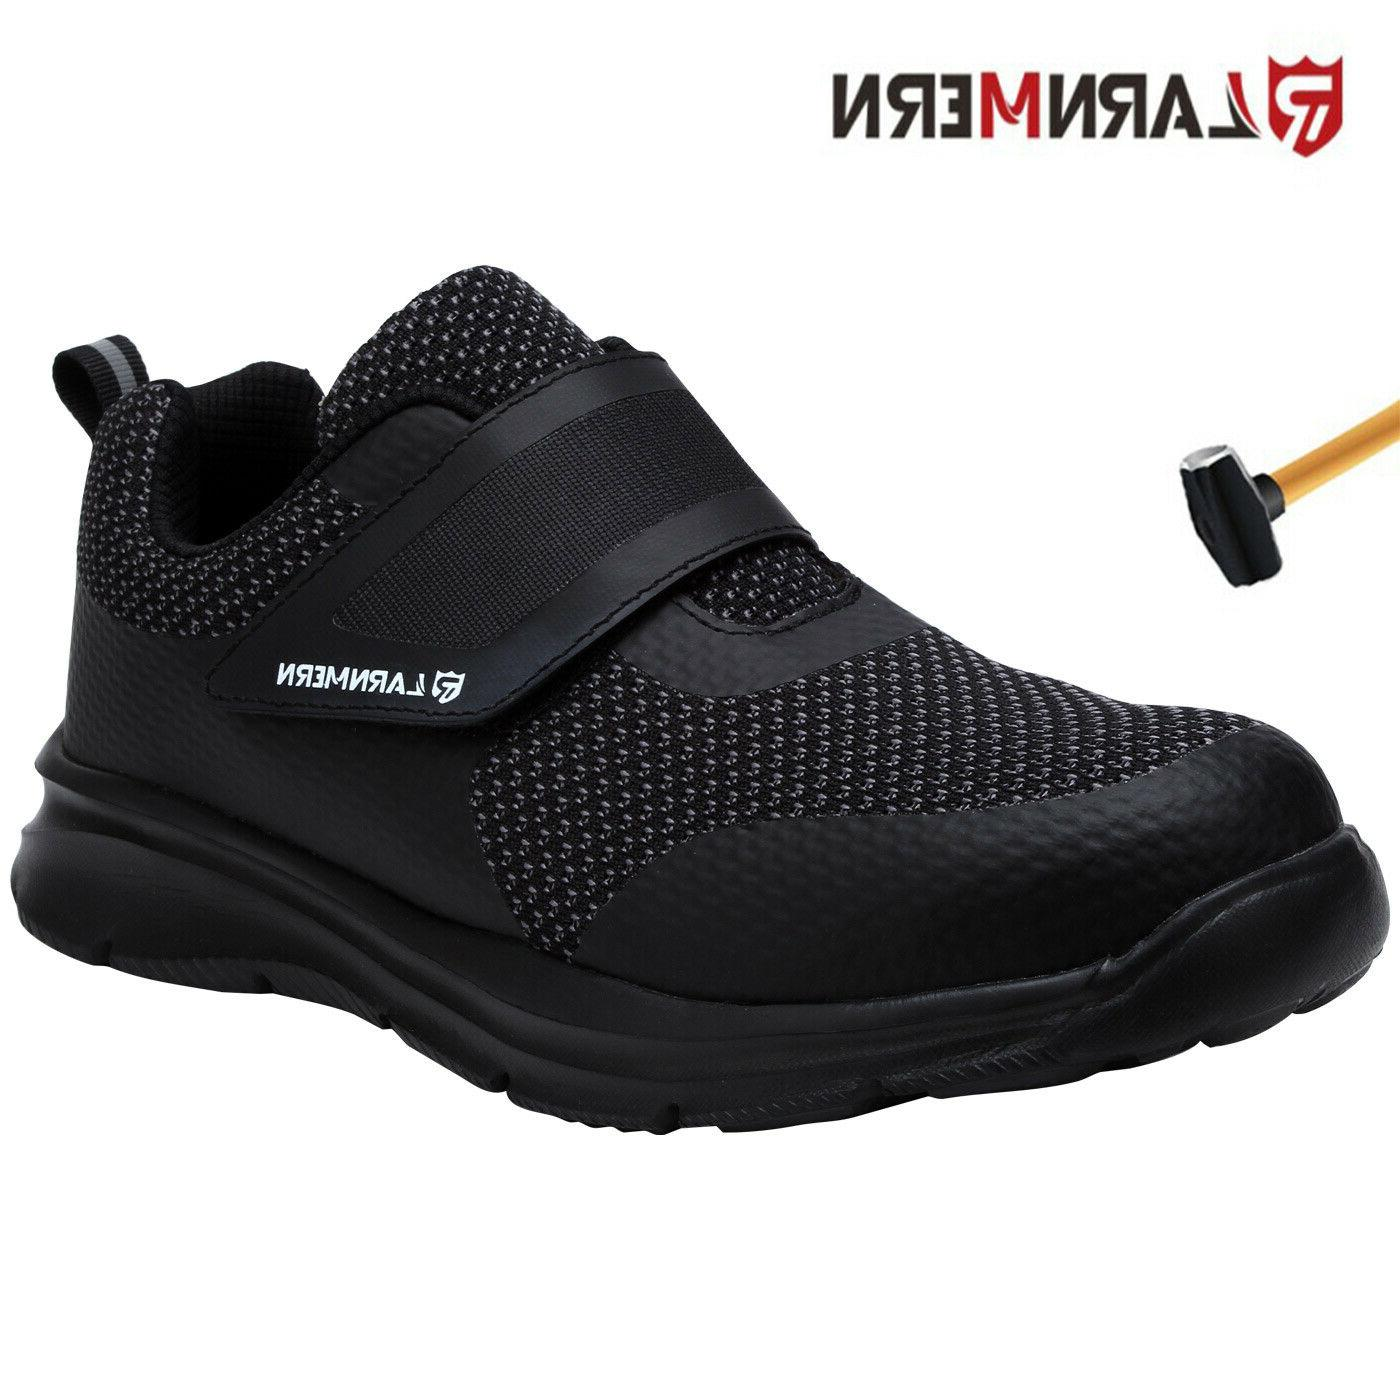 steel toe boots for men work puncture